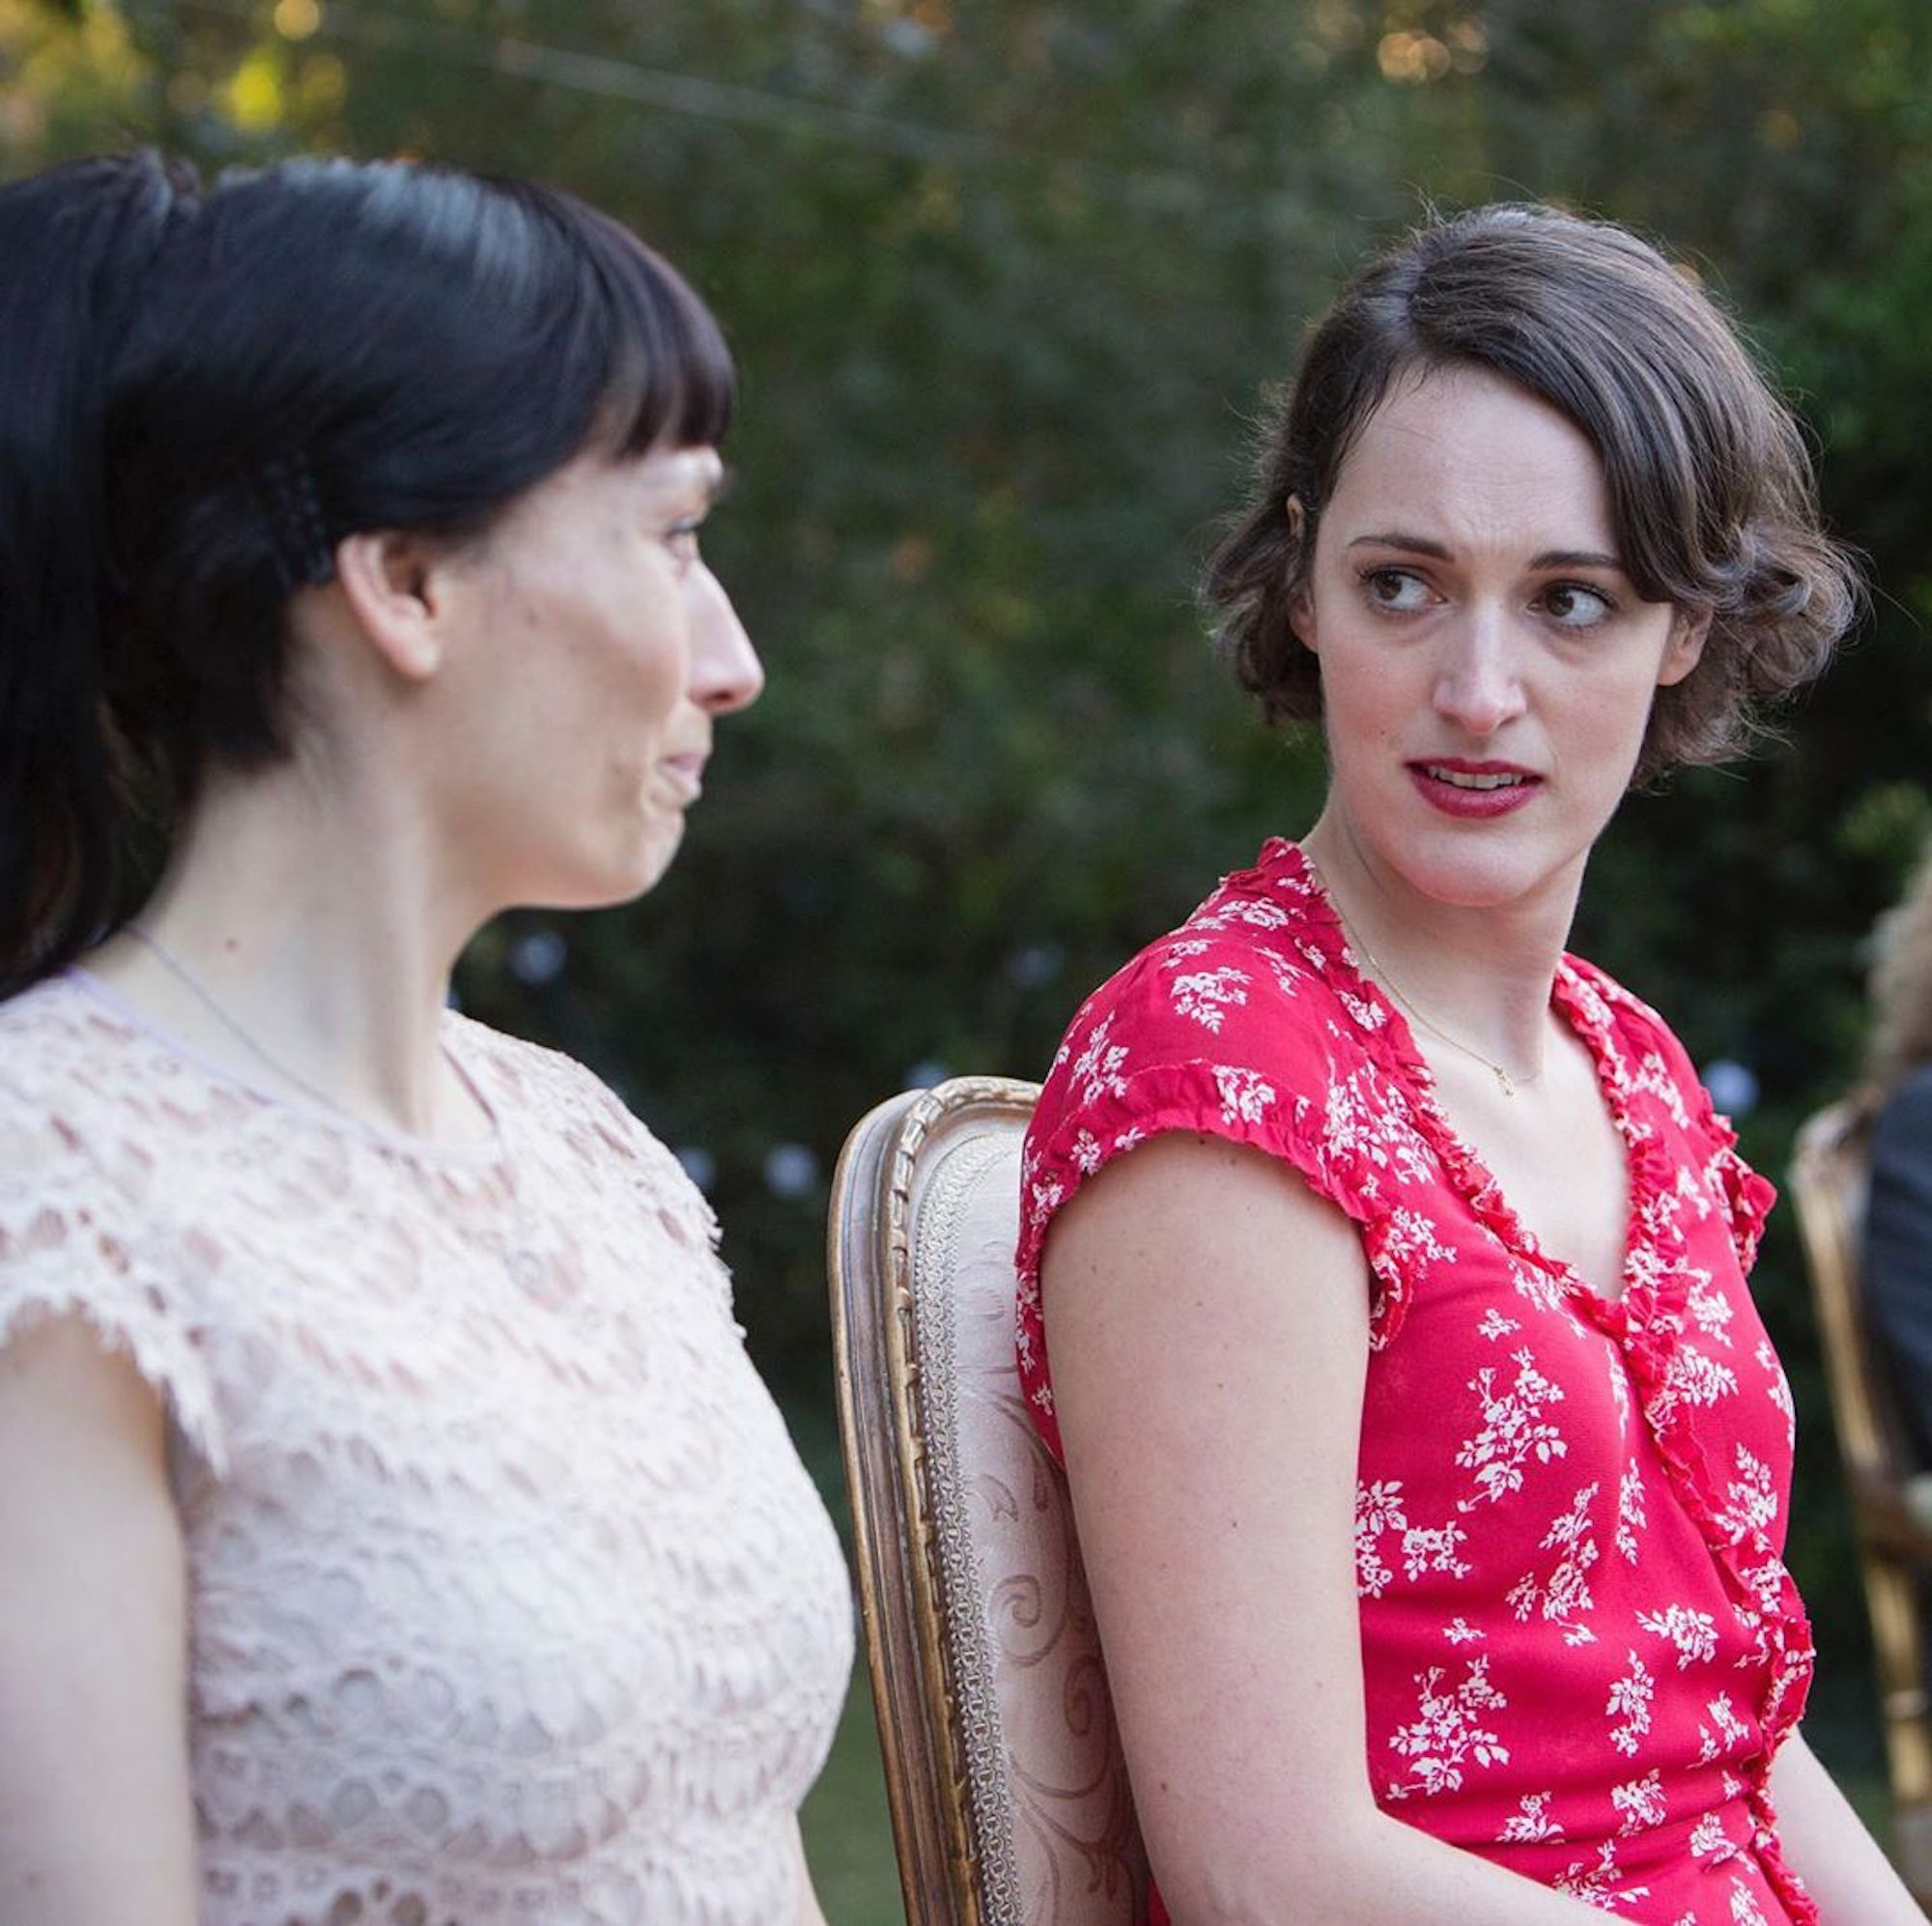 Wonderland Phoebe Waller-Bridge film news Fleabag